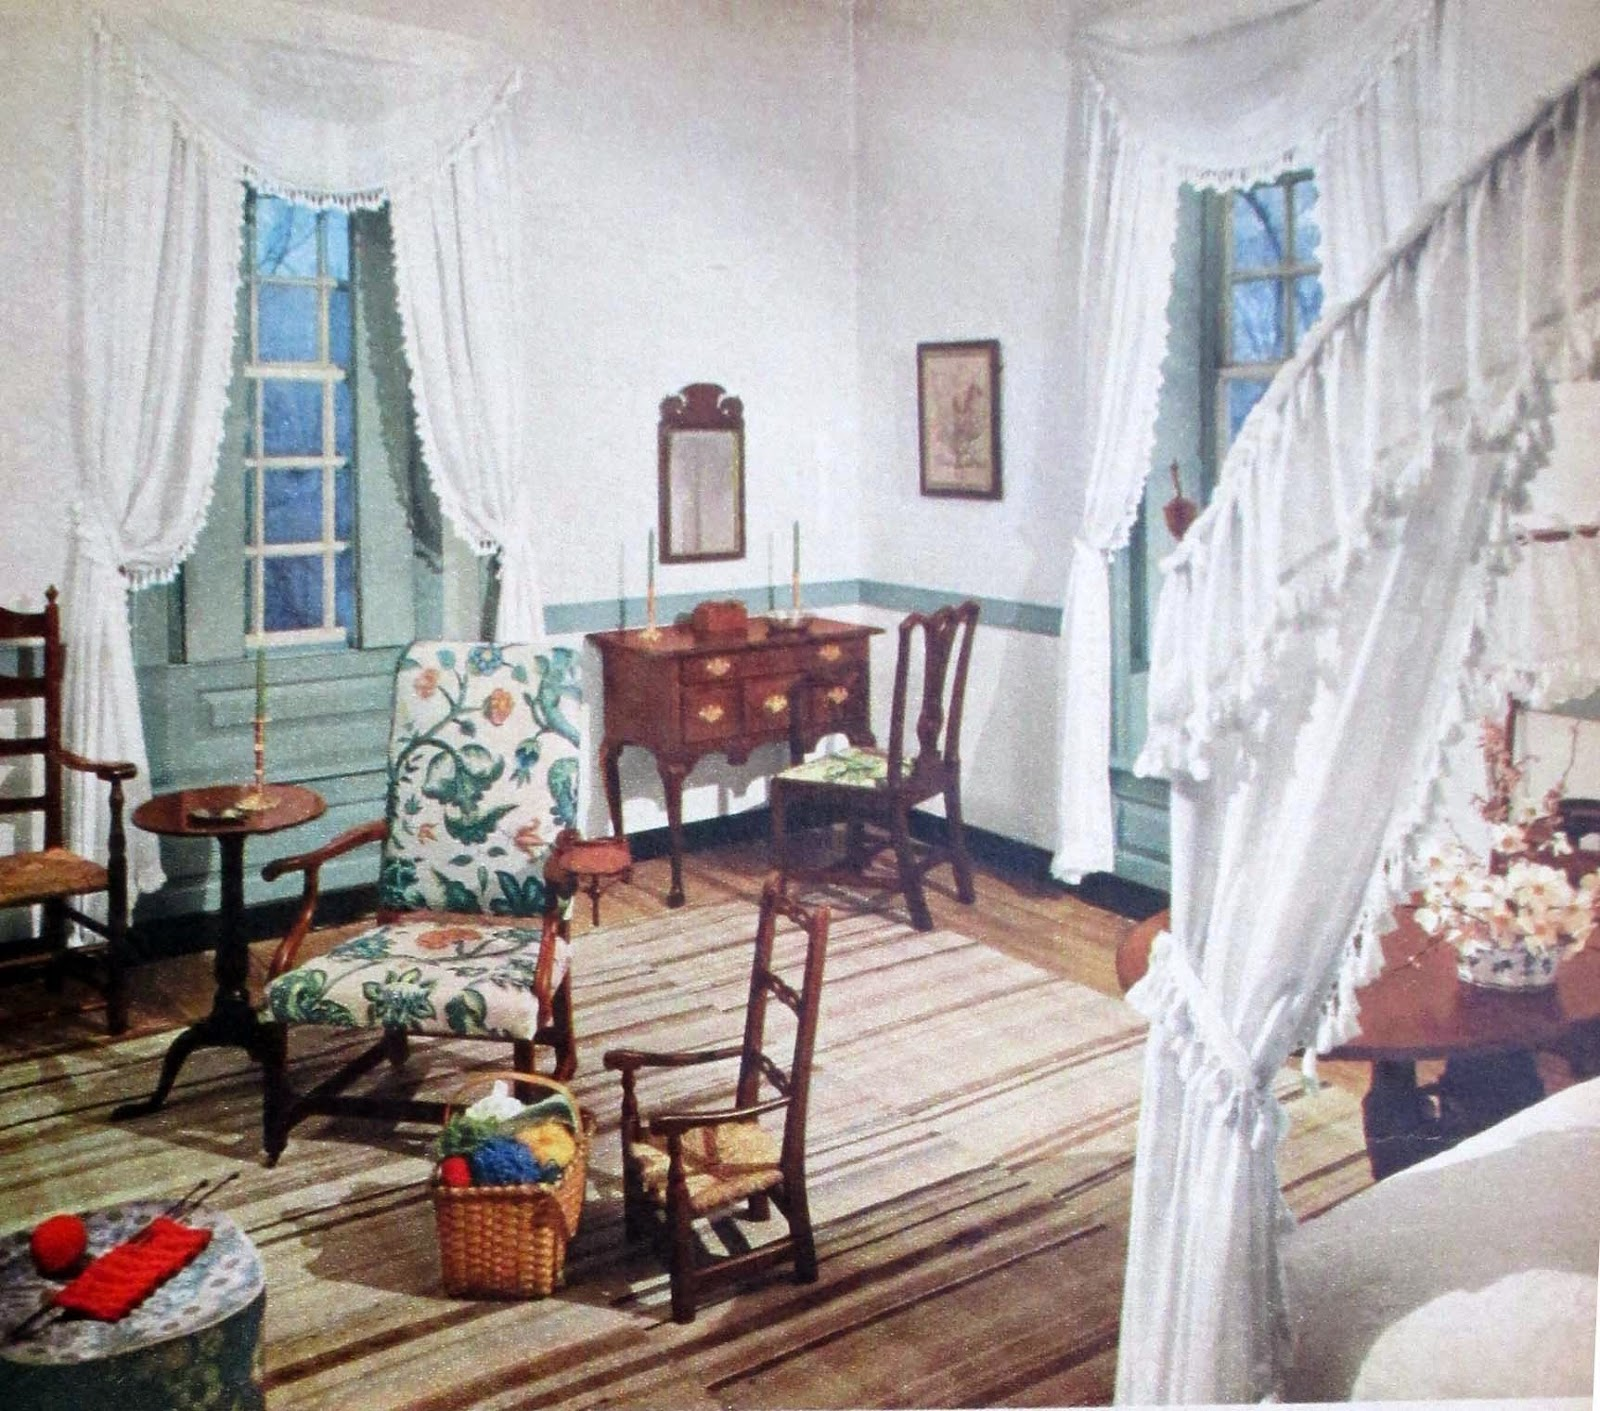 The Literate Quilter: Decorating Ideas From Colonial